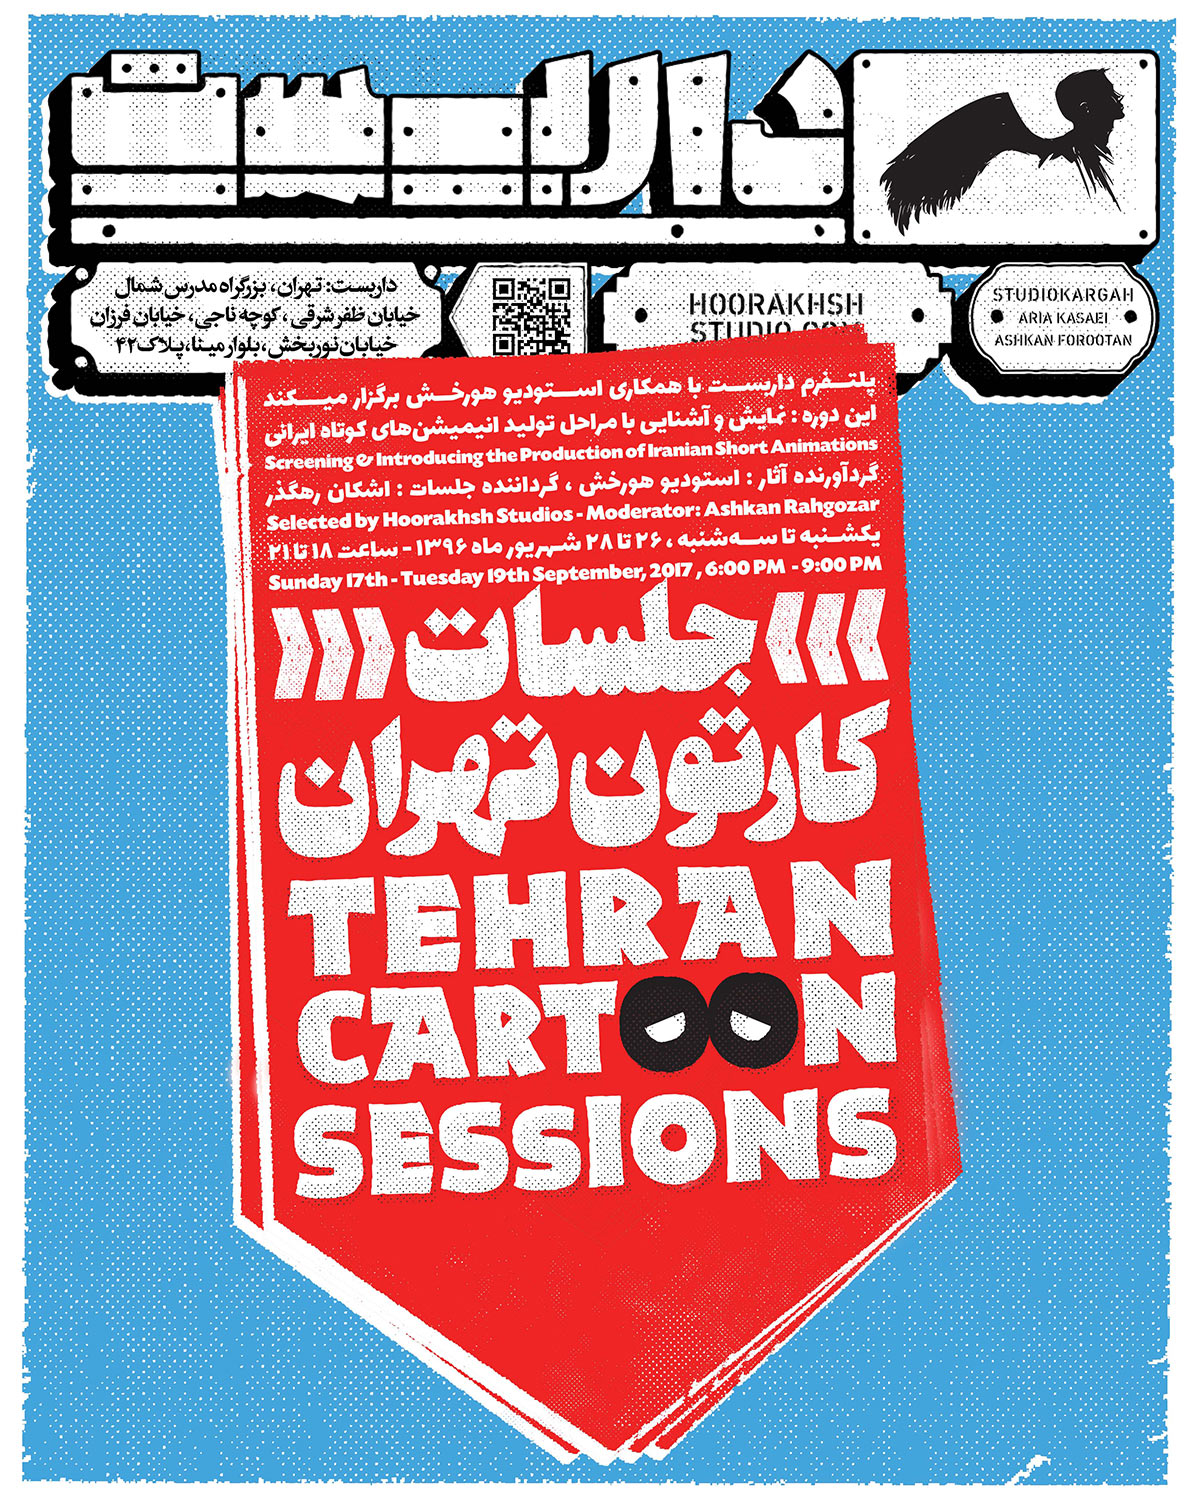 Tehran Cartoon Sessions poster.